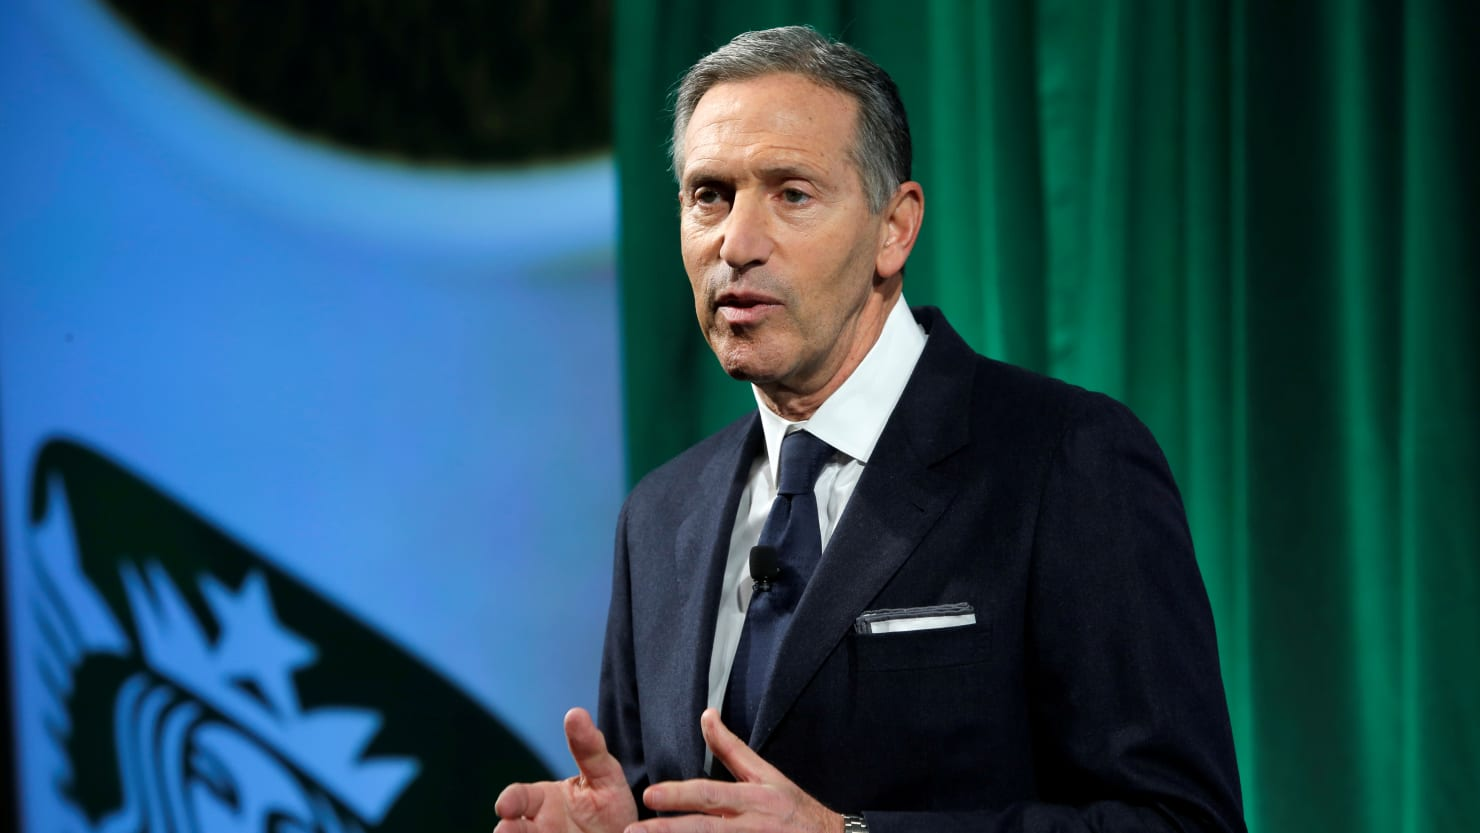 fb86127639 Howard Schultz Blames Alexandria Ocasio-Cortez for His Decision to Run as  Independent